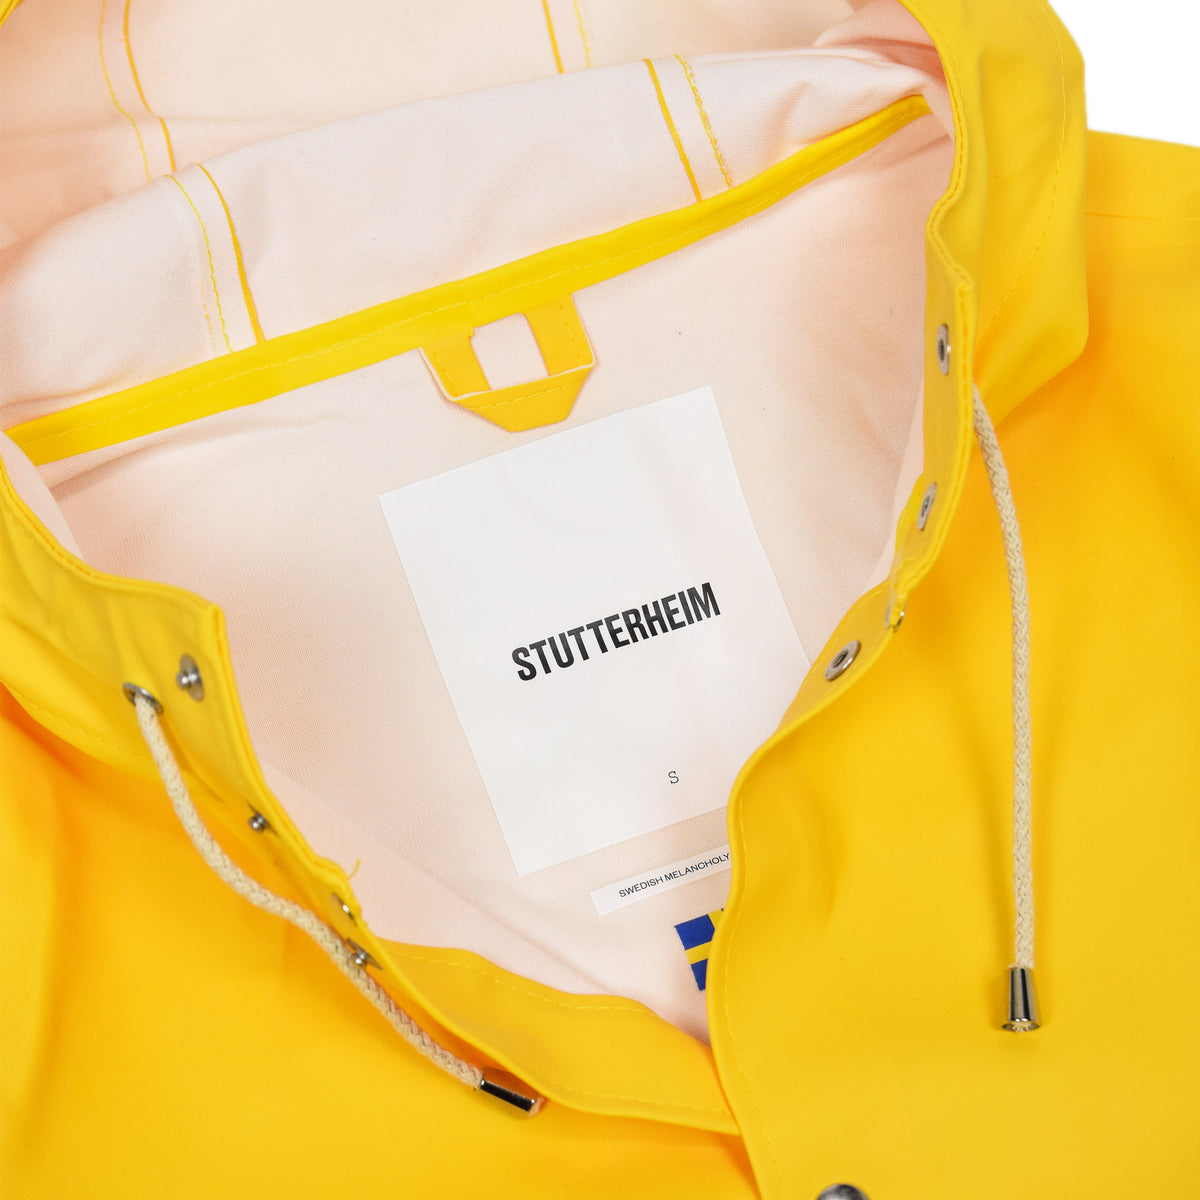 Stutterheim Stockholm Rubberised Raincoat Jacket Yellow Label